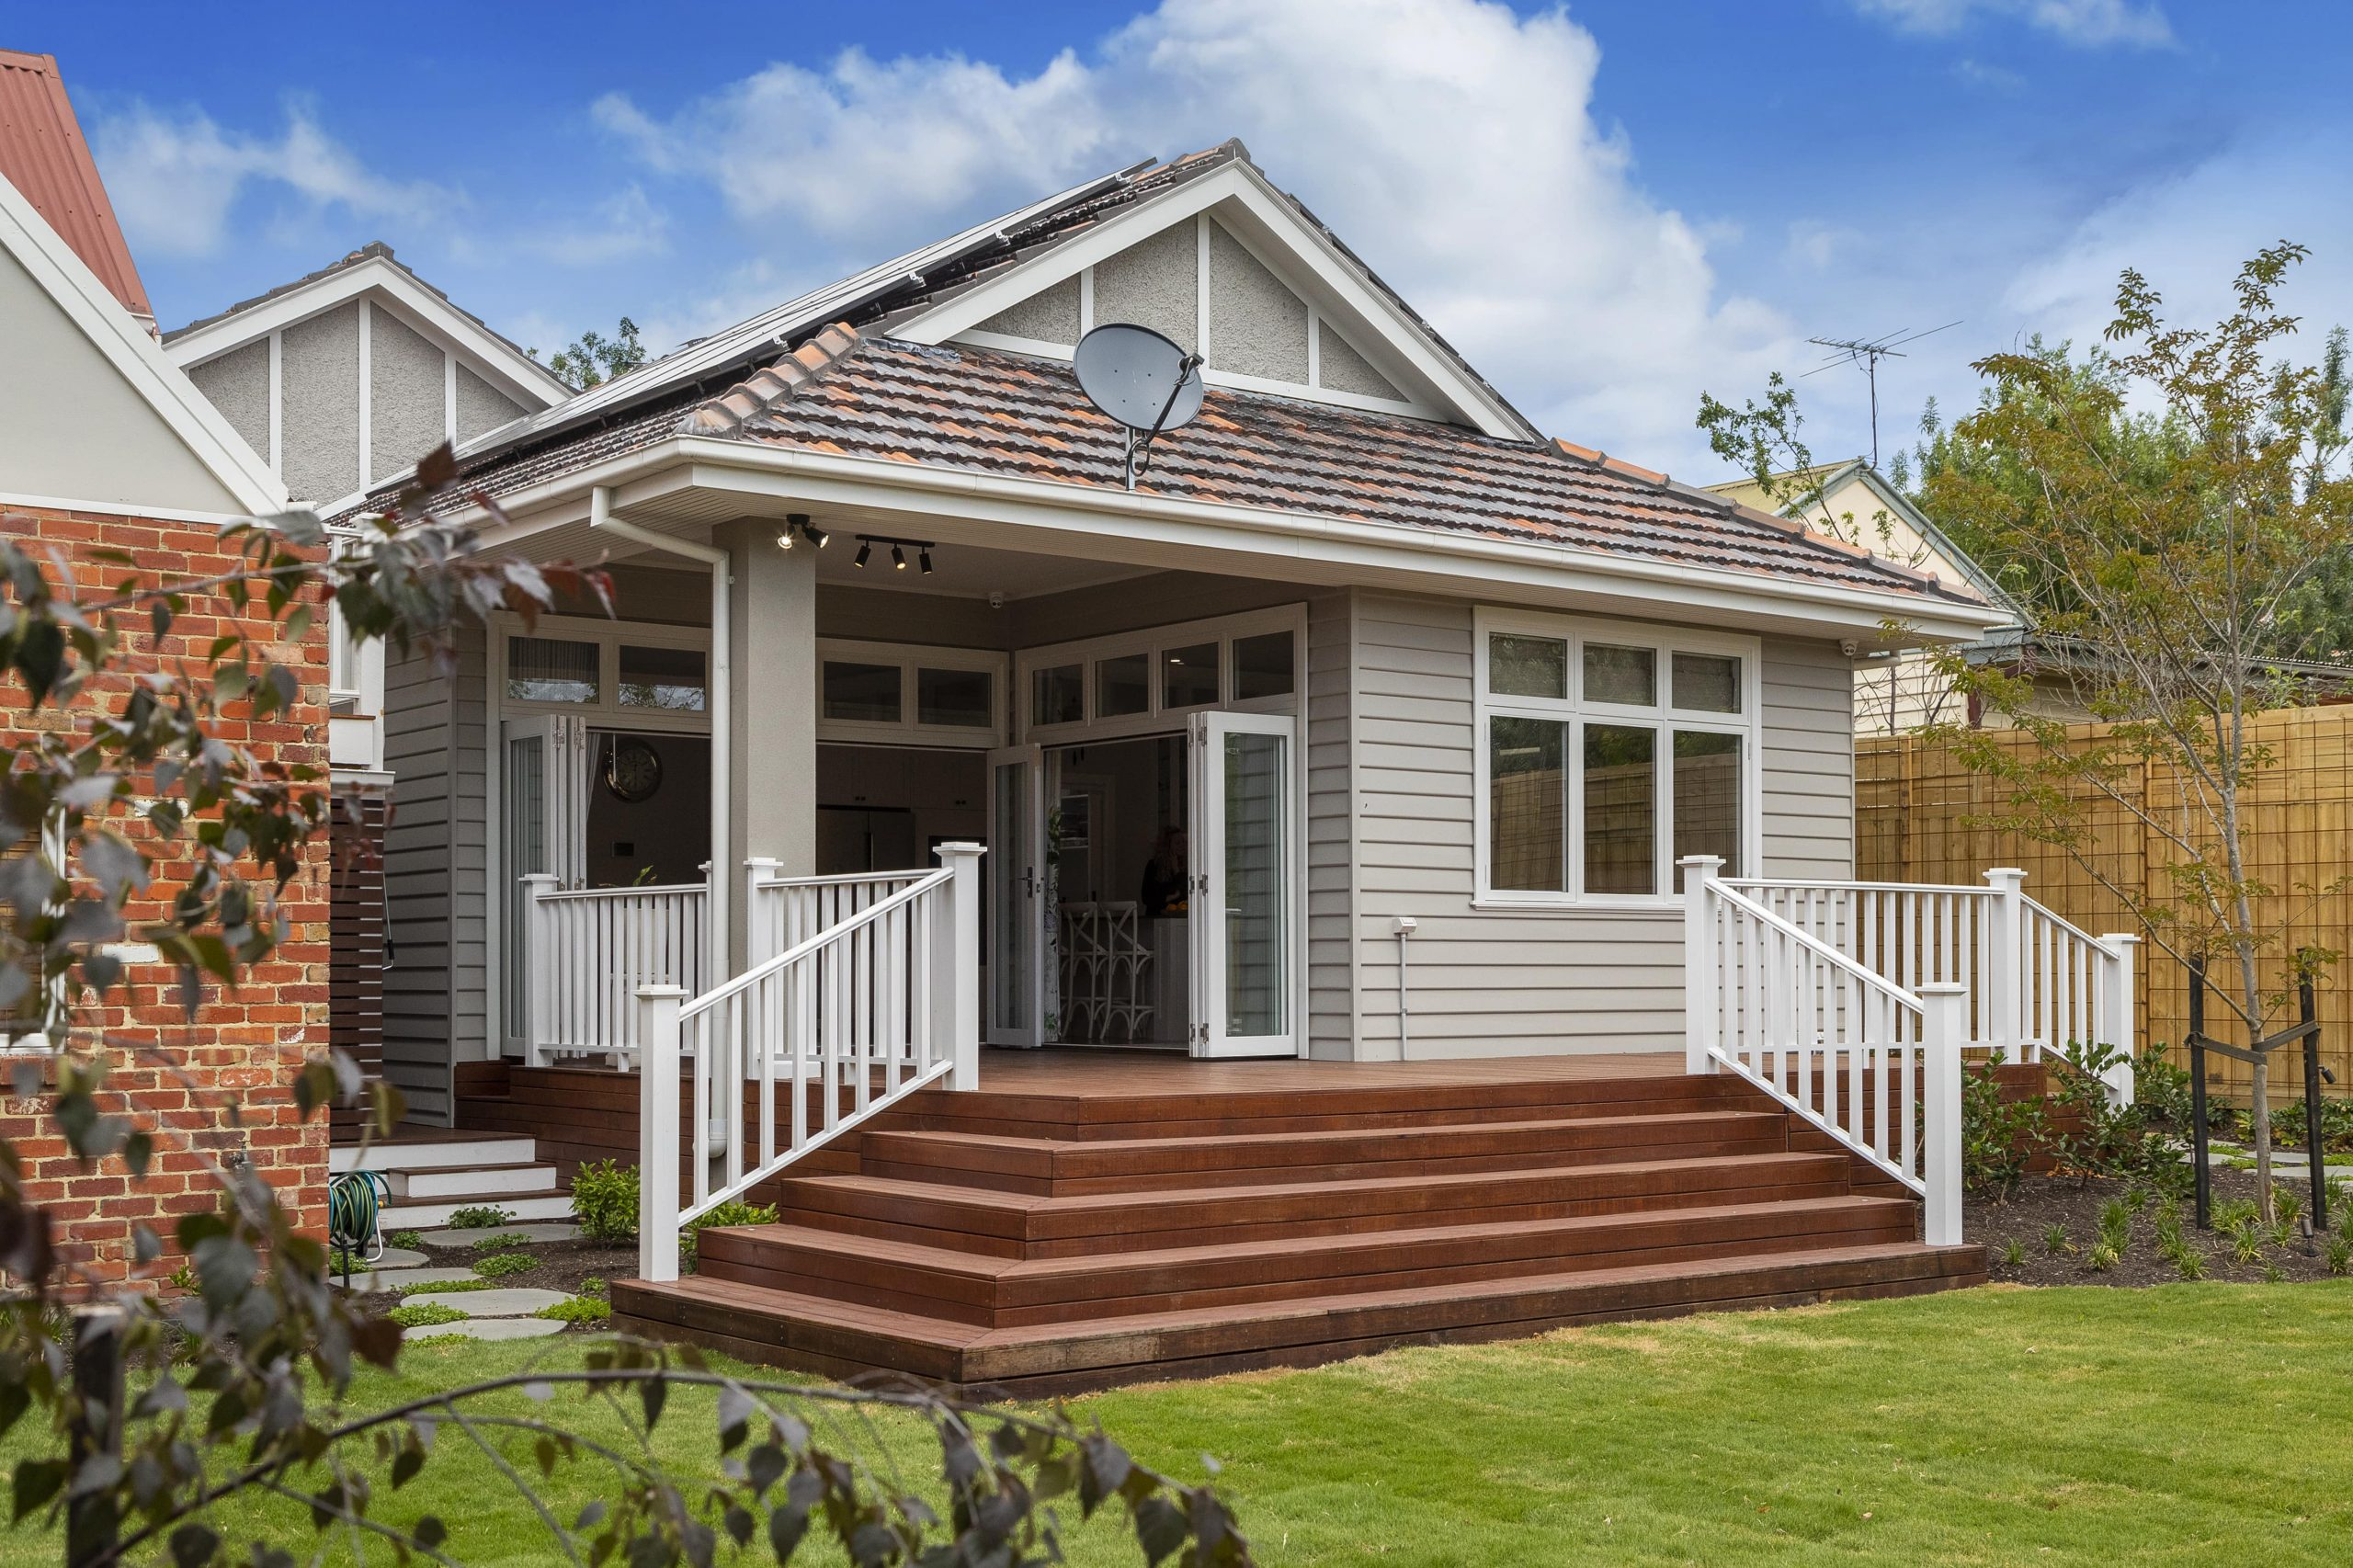 How To Make Your Home Renovation Project A Good One